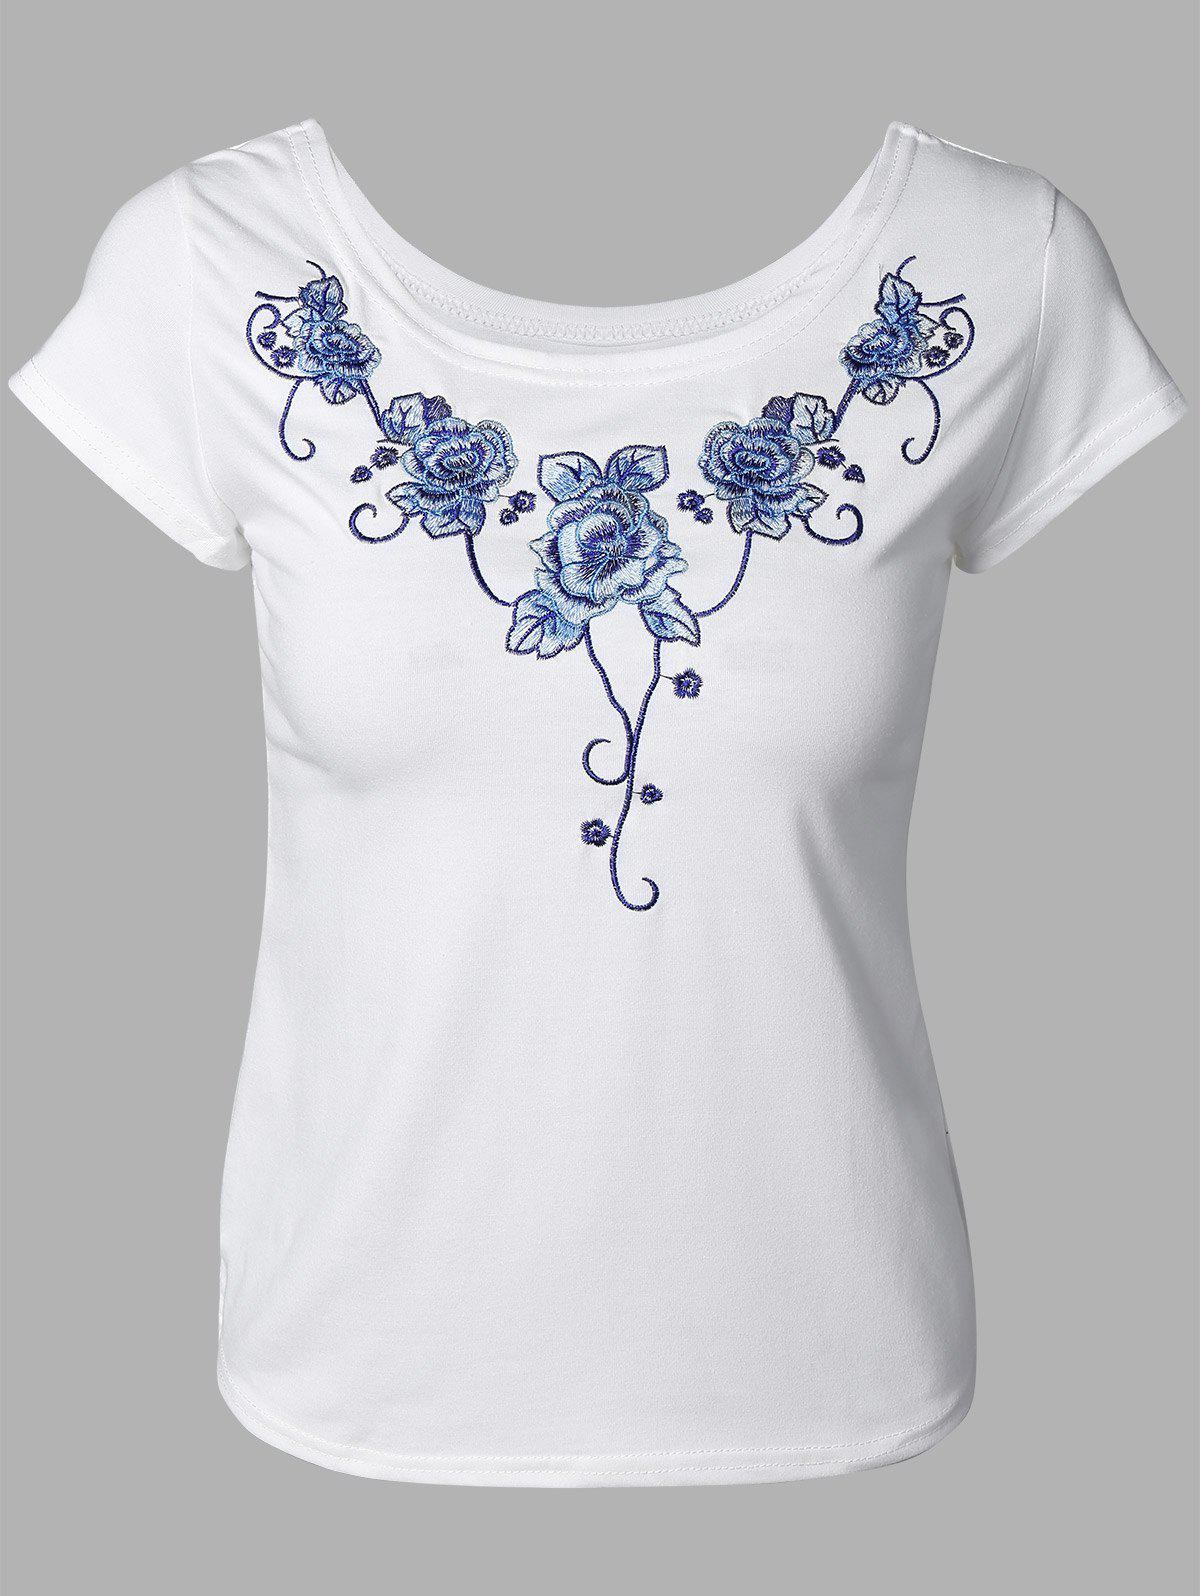 Elegant Floral Embroidery Tee - WHITE ONE SIZE